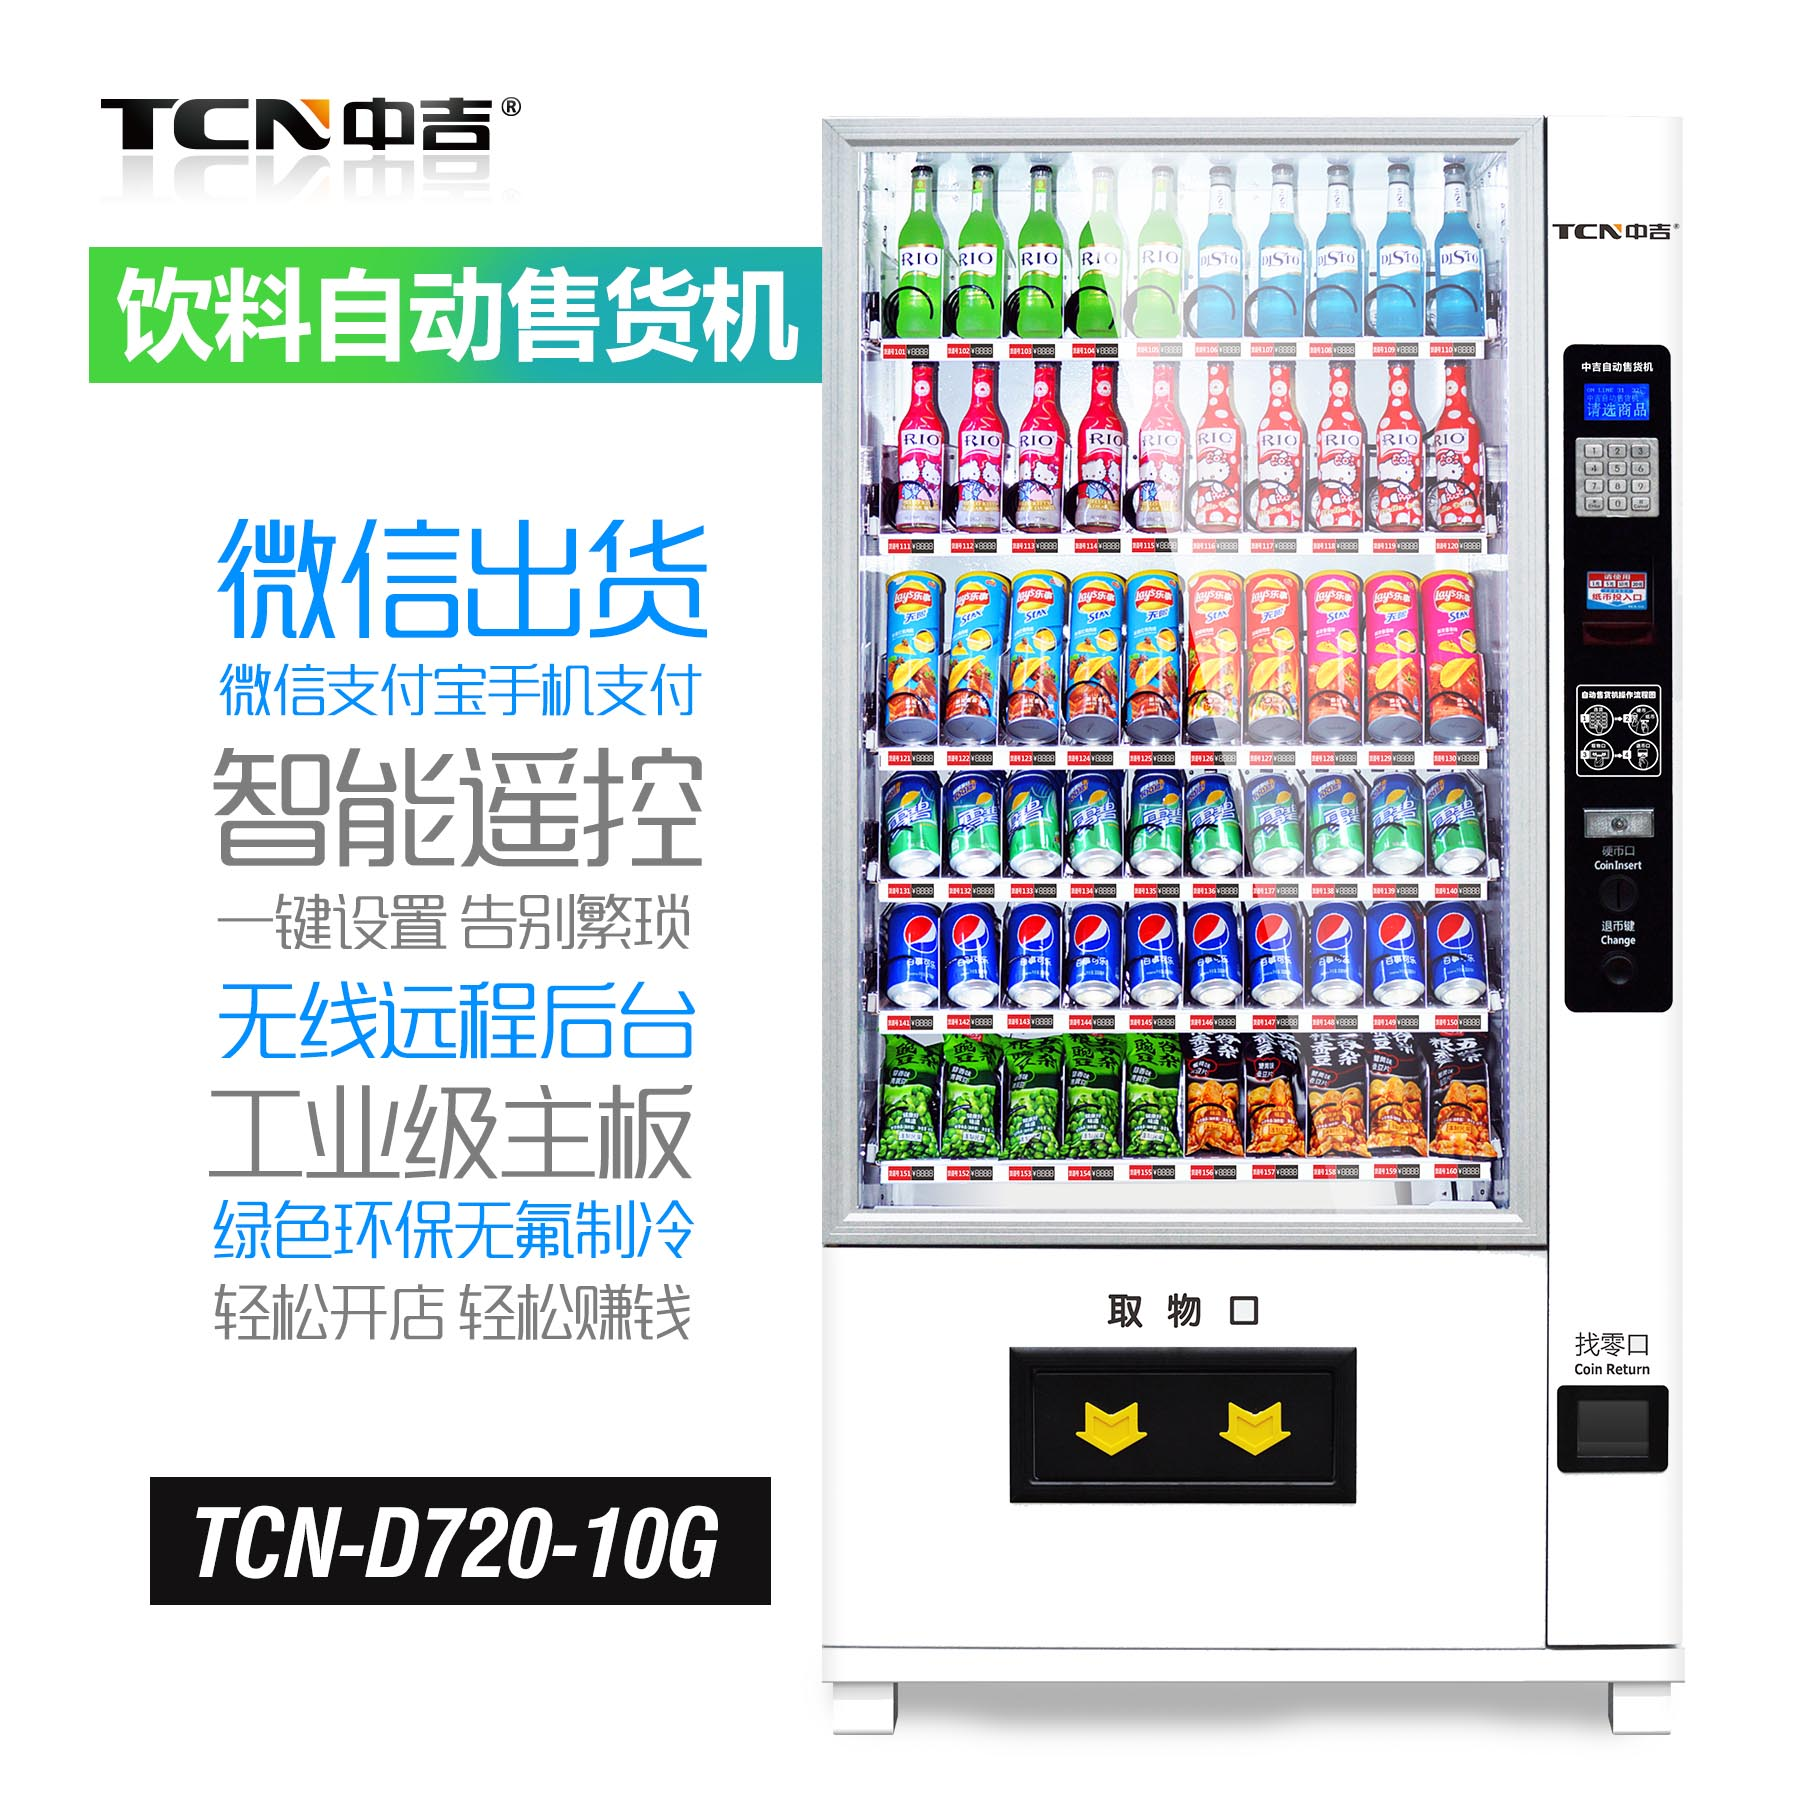 China and kyrgyzstan vending machine beverage vending machine food machine self snack vending machines vending machines vending machines